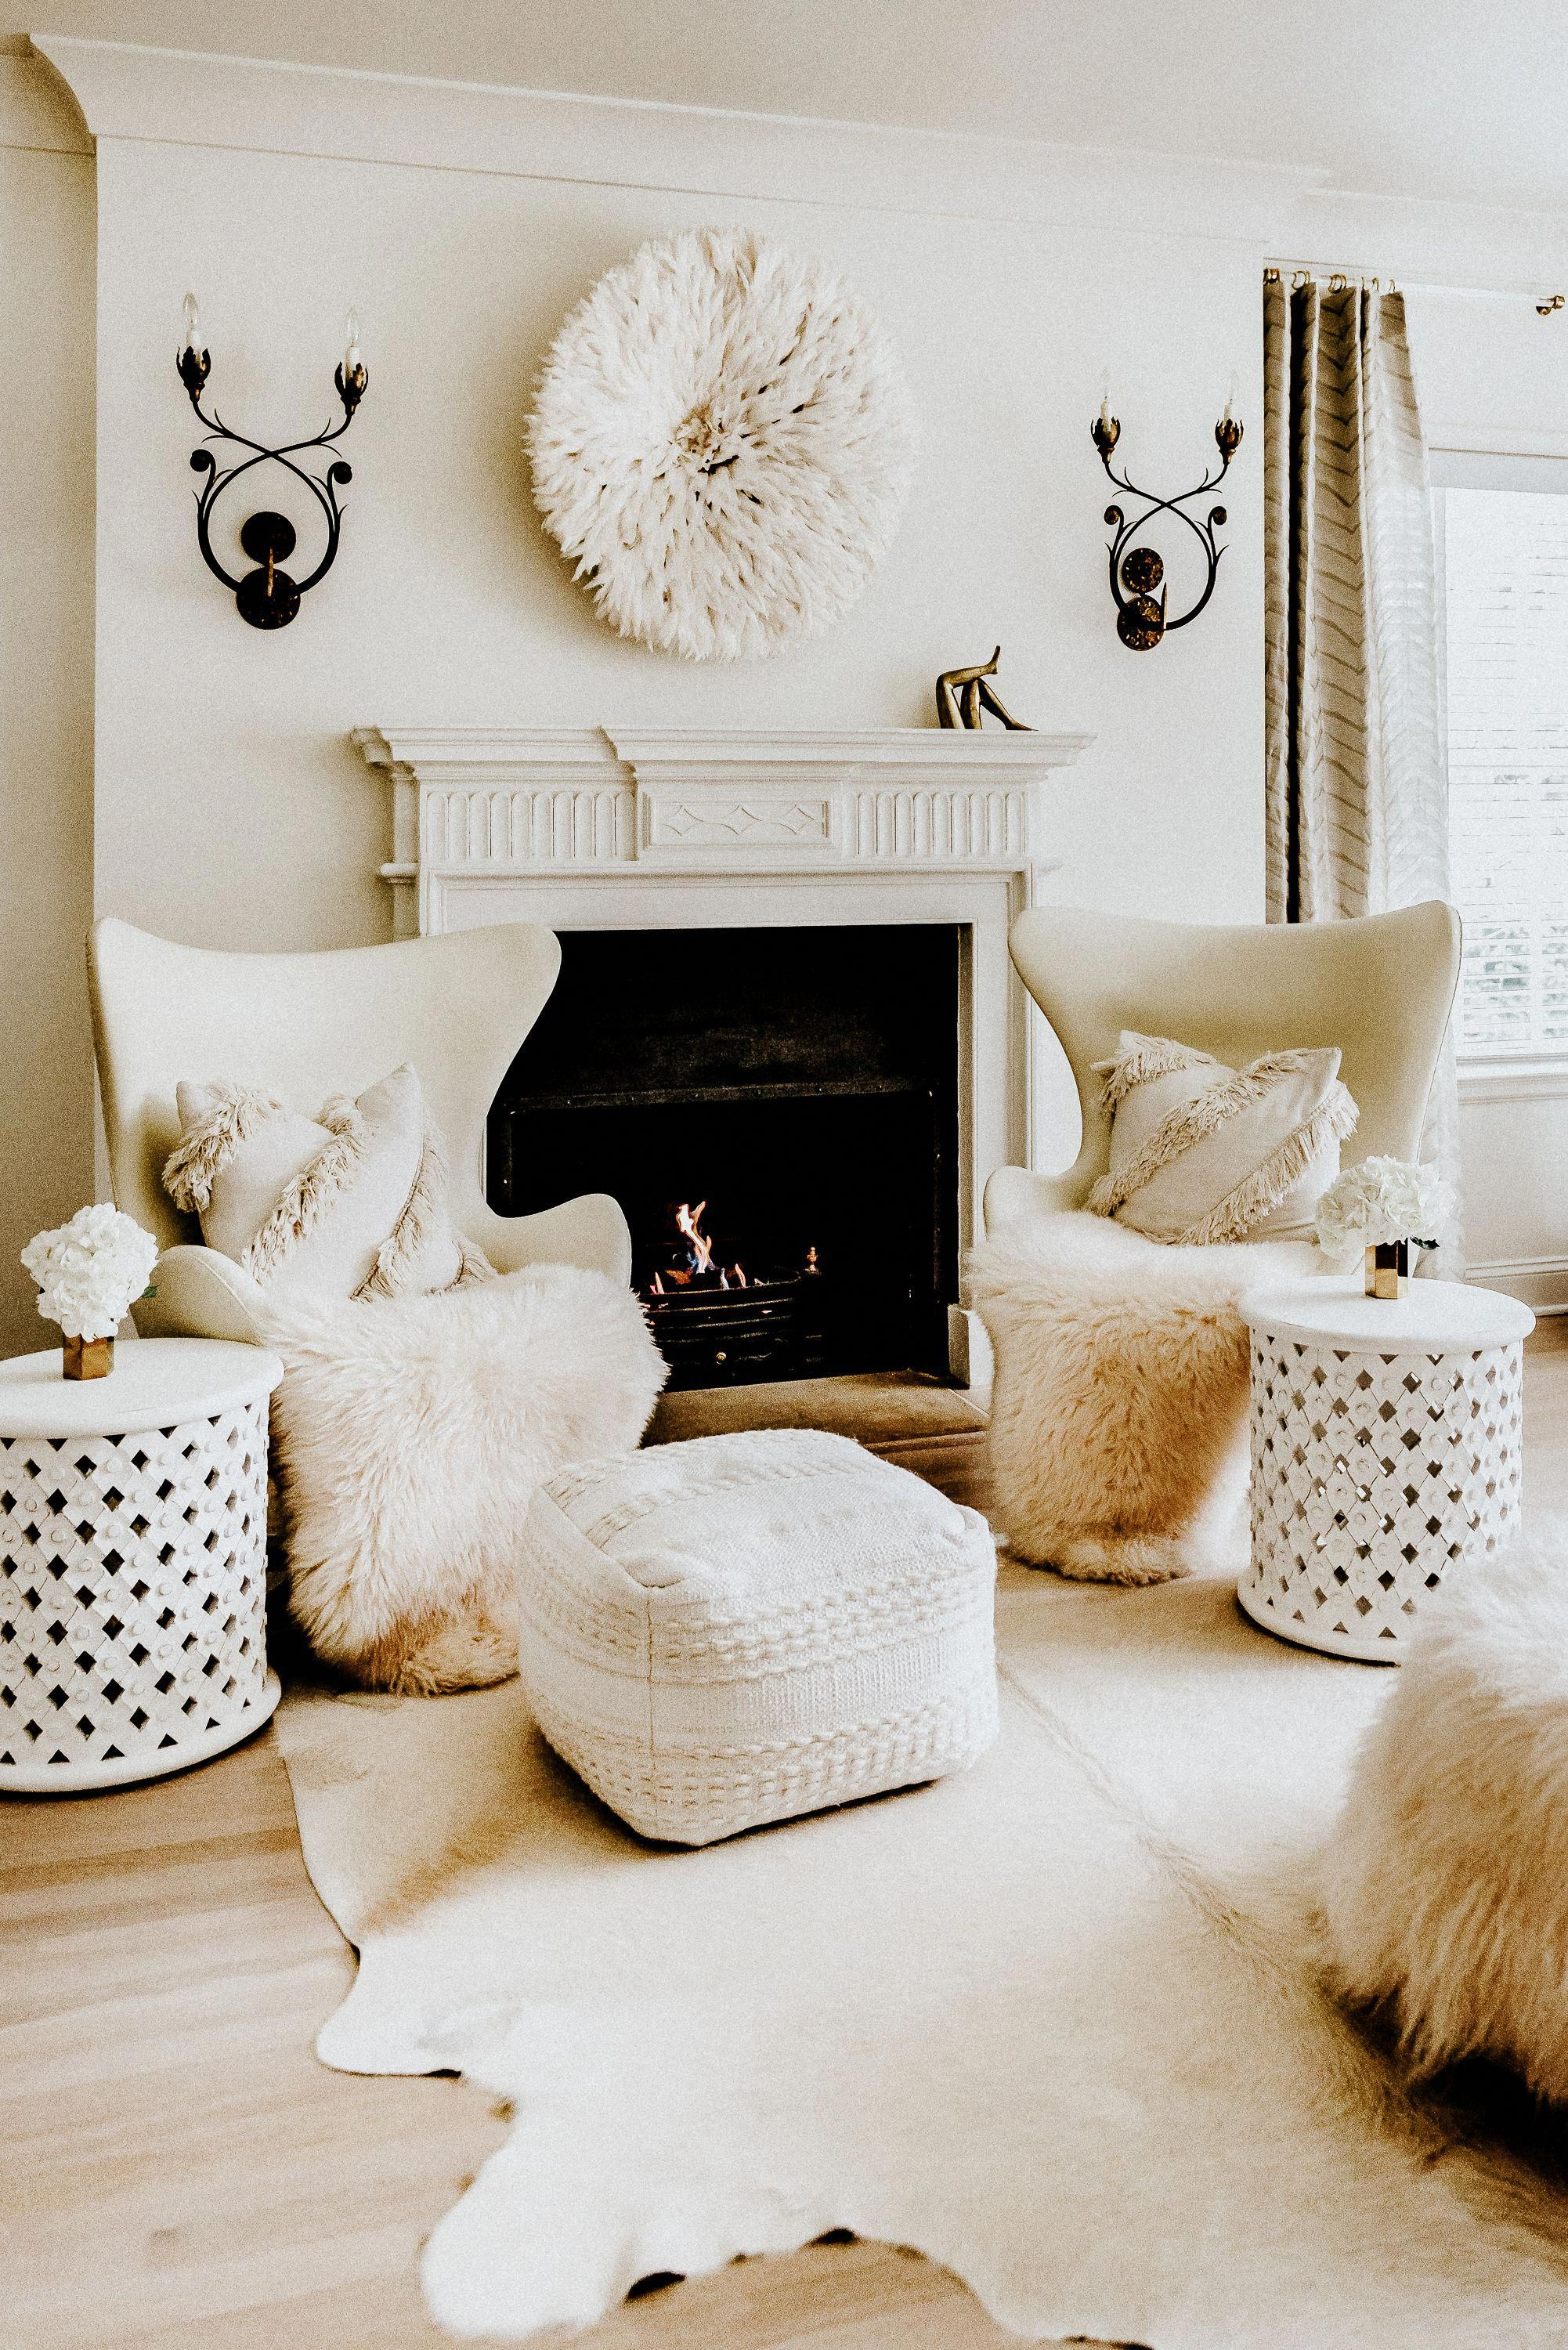 Decorating trends for 2019: add modern monochrome tribal touches to your decor. Tribal accents are everywhere from the catwalks to our homes. Here are some tips to incorporate tribal decor into your neutral home. #decor #tribal #modern #eggchairs #jujuhat #neutrallivingroomdecor